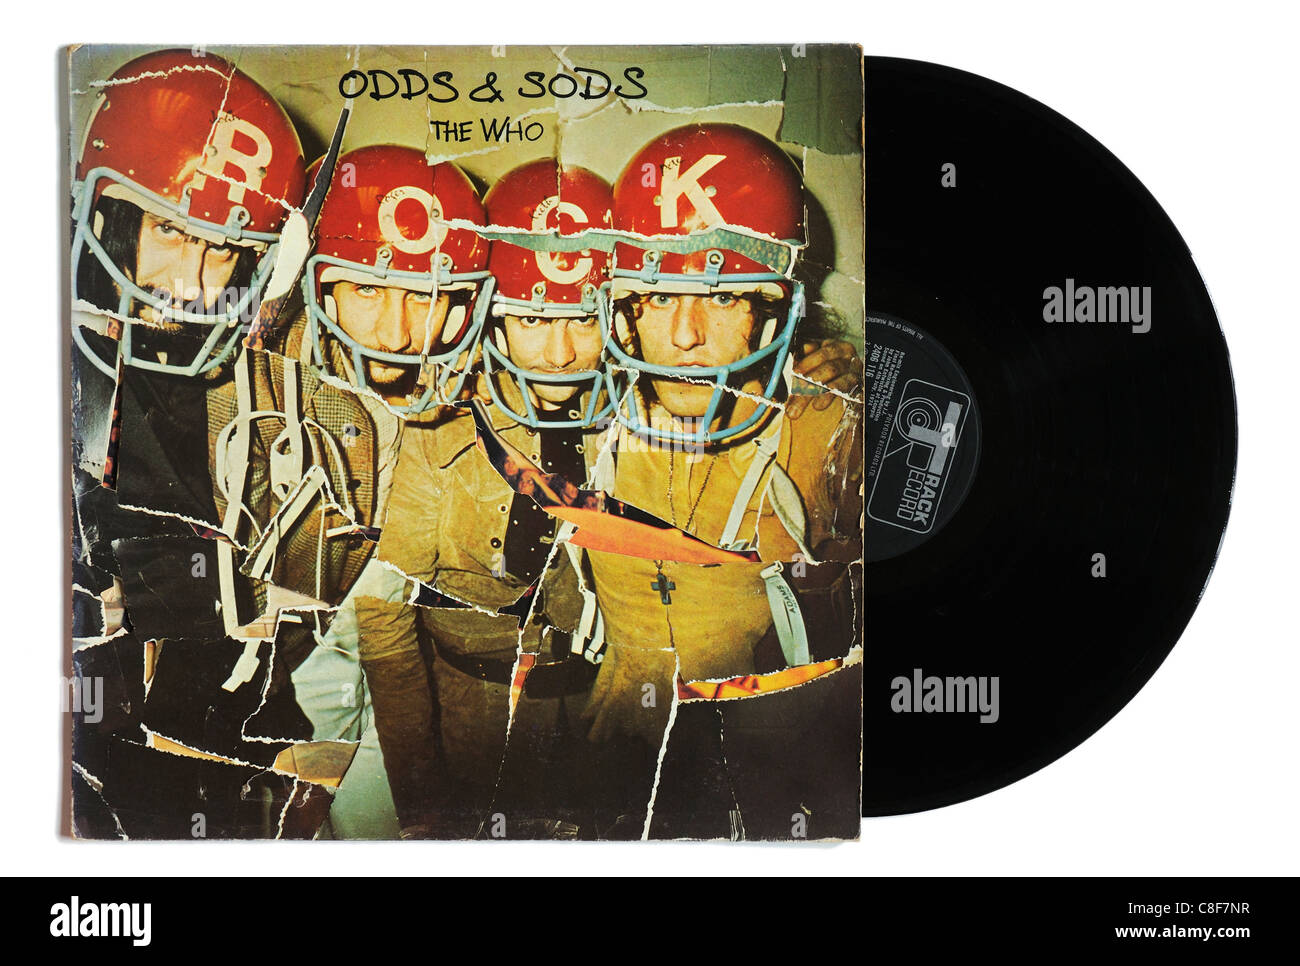 The Who Odds and Sods album - Stock Image